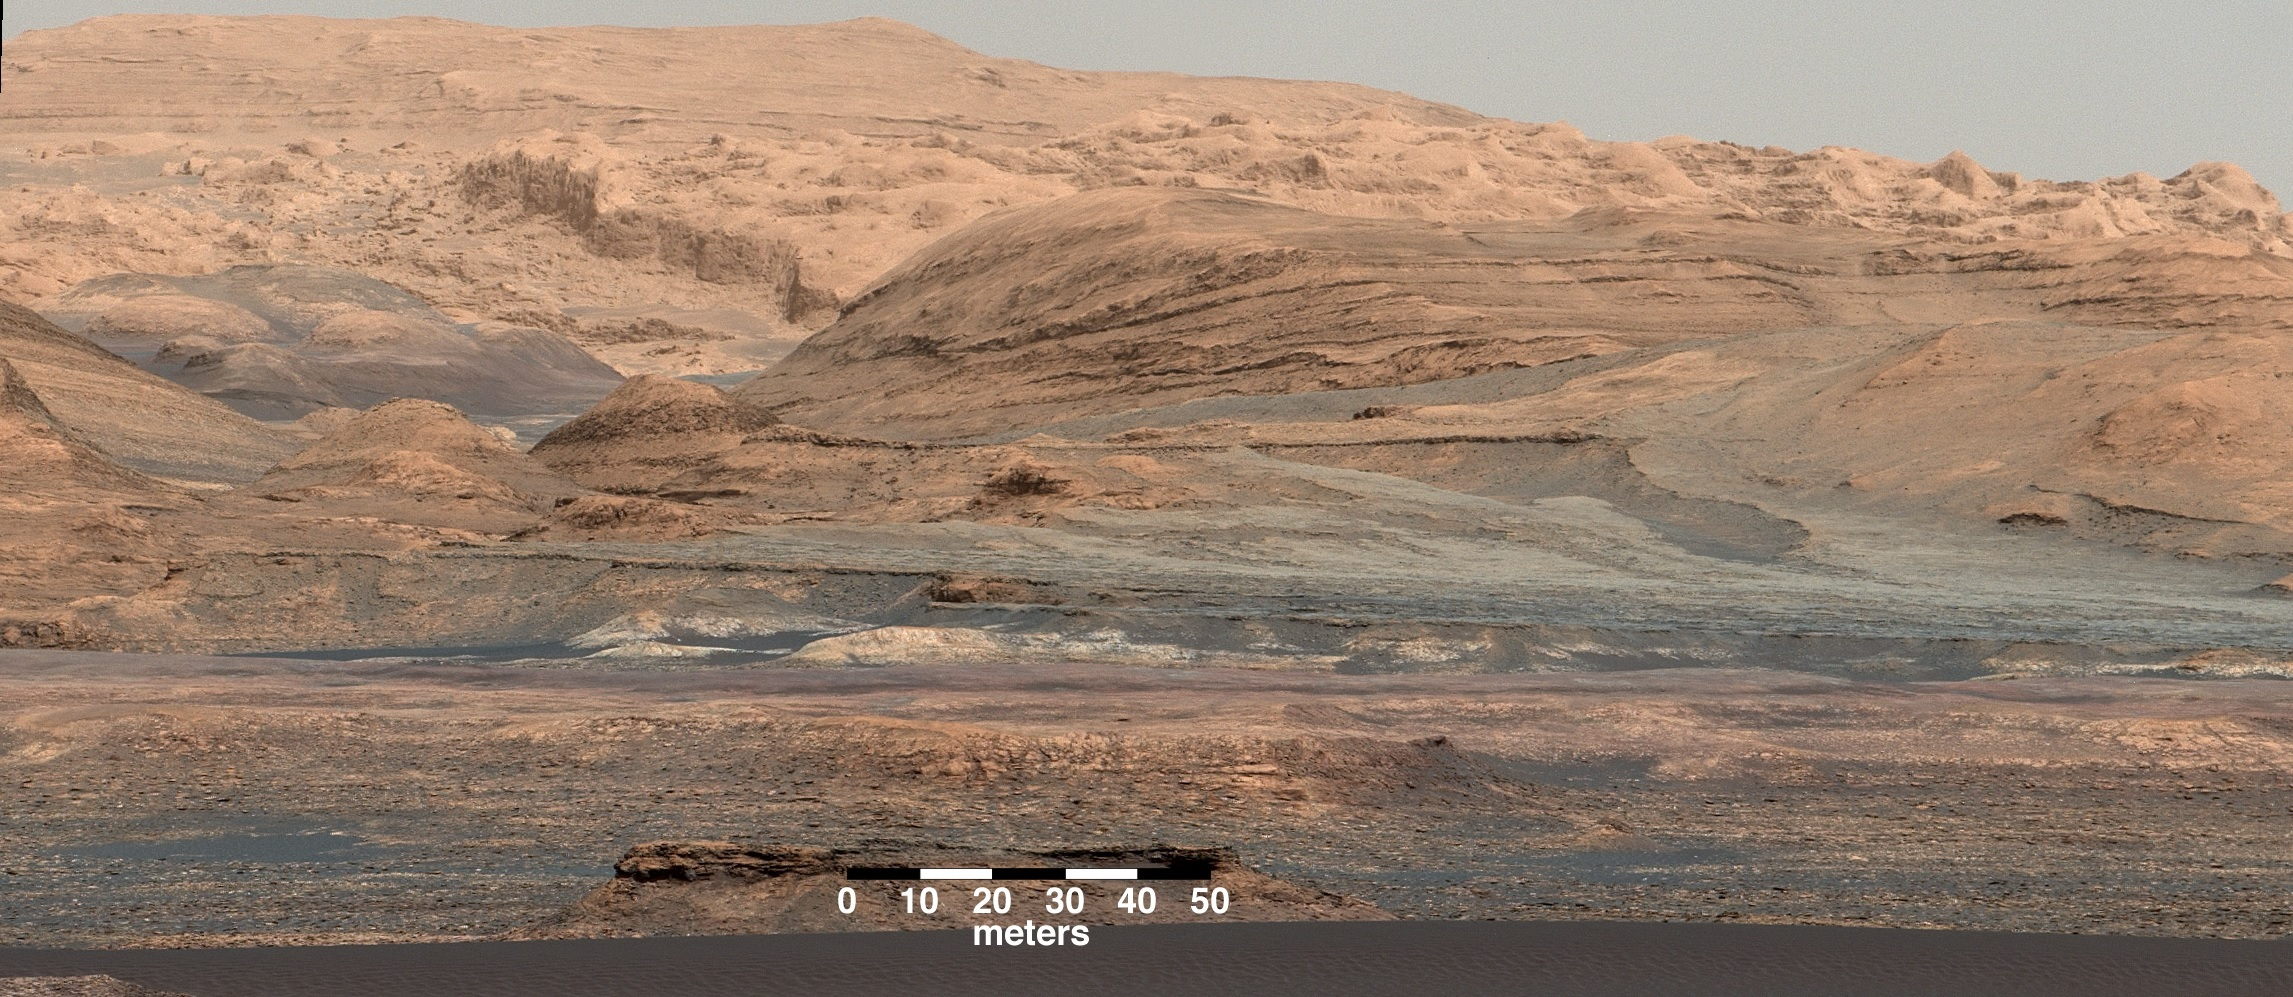 Mars looks a little like Arizona here in this shot captured by the Mars Exploration Rover.